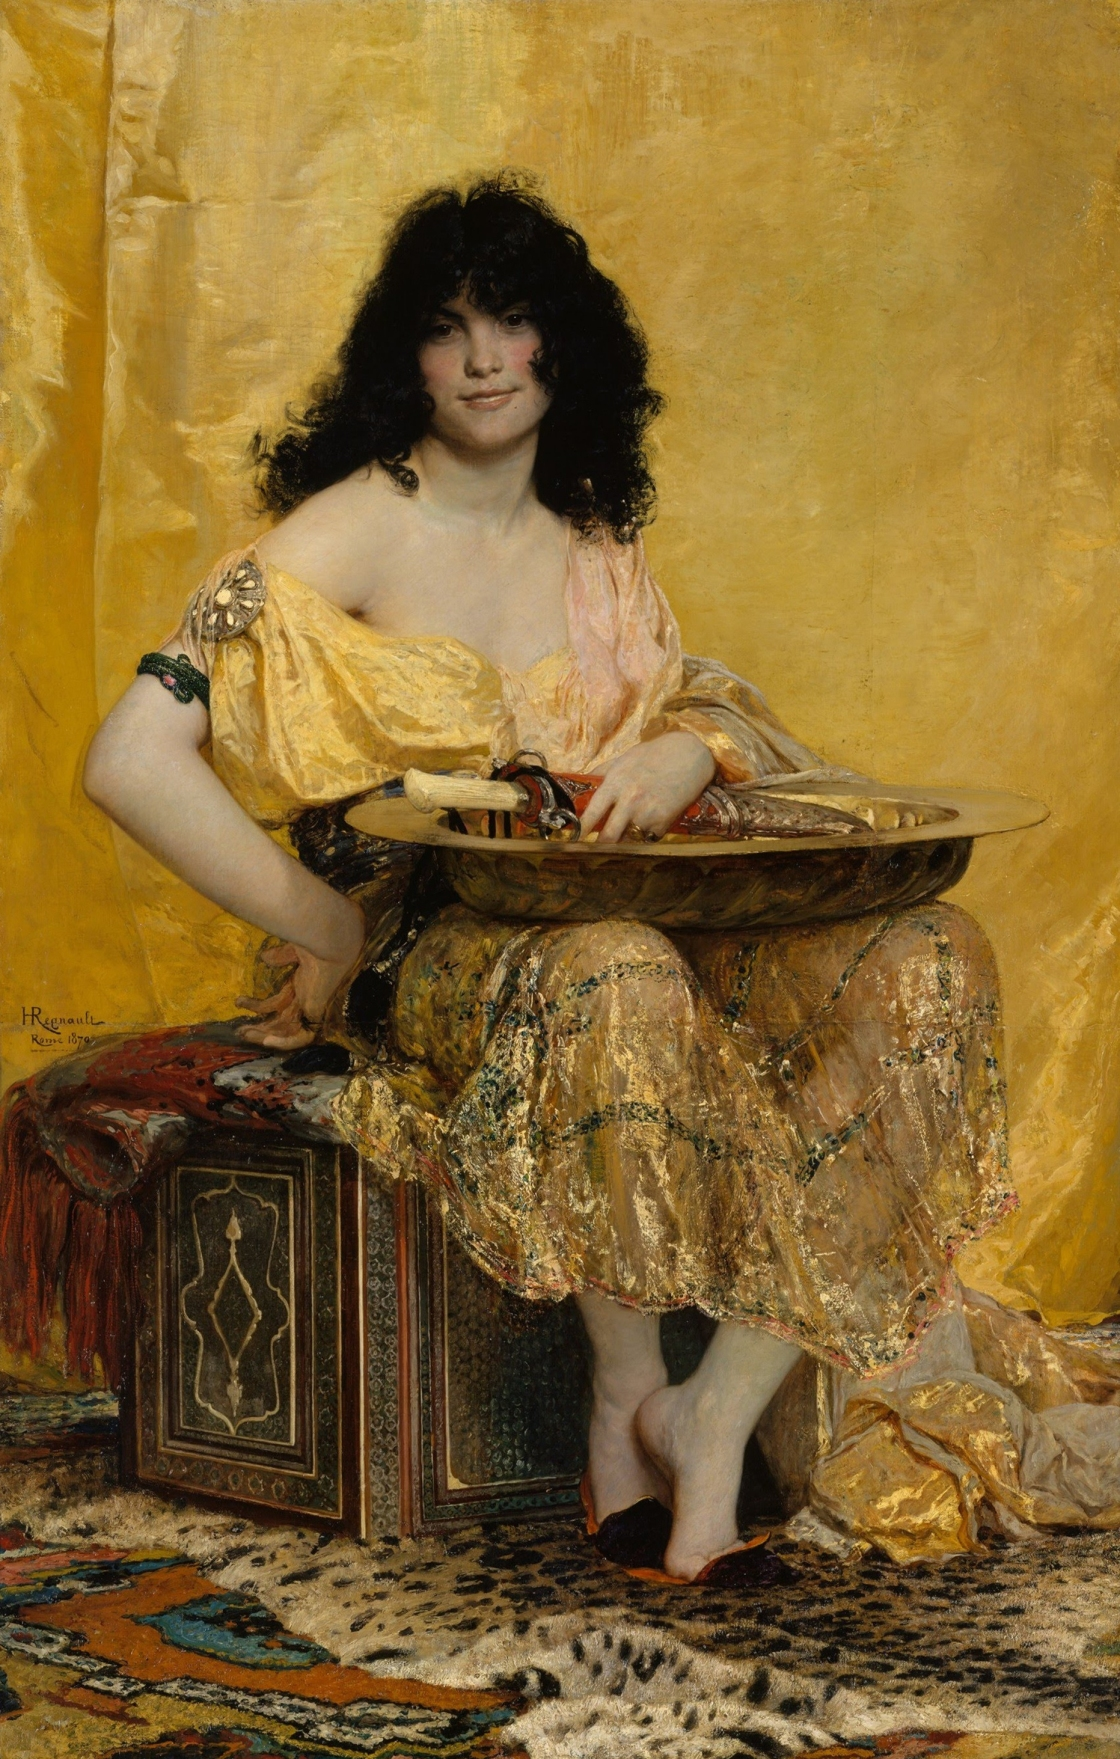 4 72 Henri_Regnault_(French,_Paris_1843–1871_Buzenval)_-_Salomé_-_Google_Art_Project